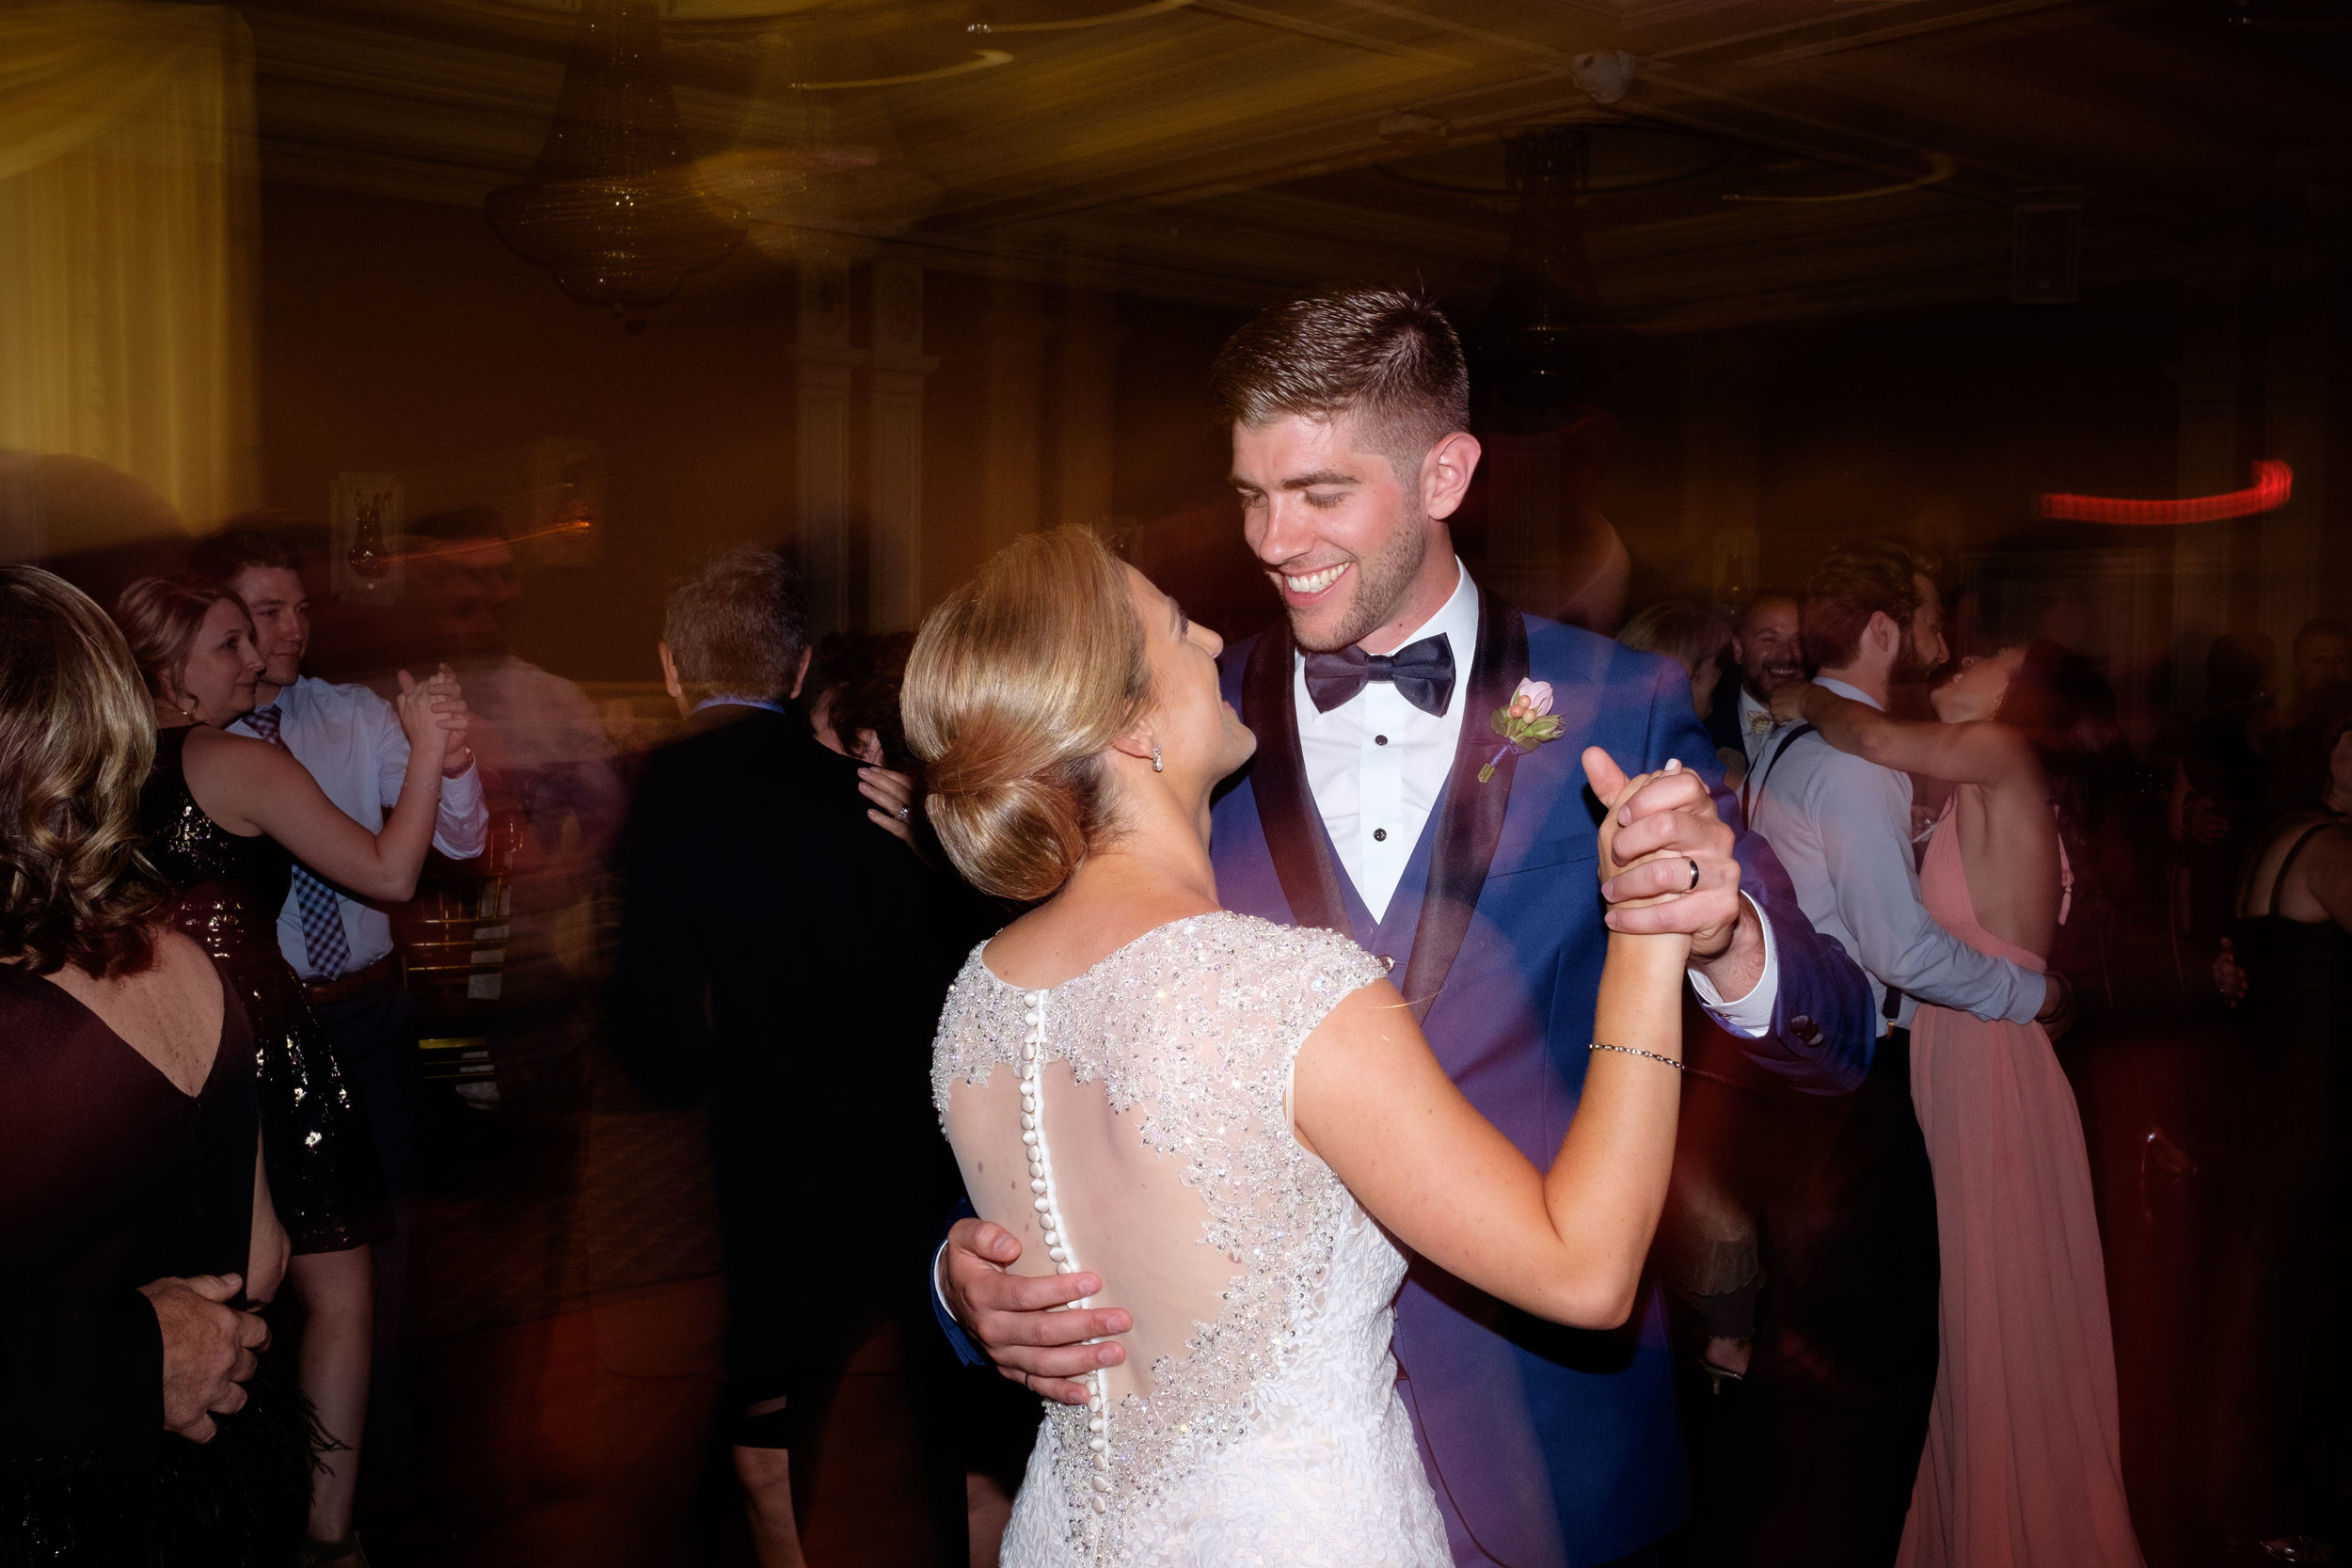 Sabrina + Zach share a dance during their wedding reception at the Jewel Event Centre in Toronto.